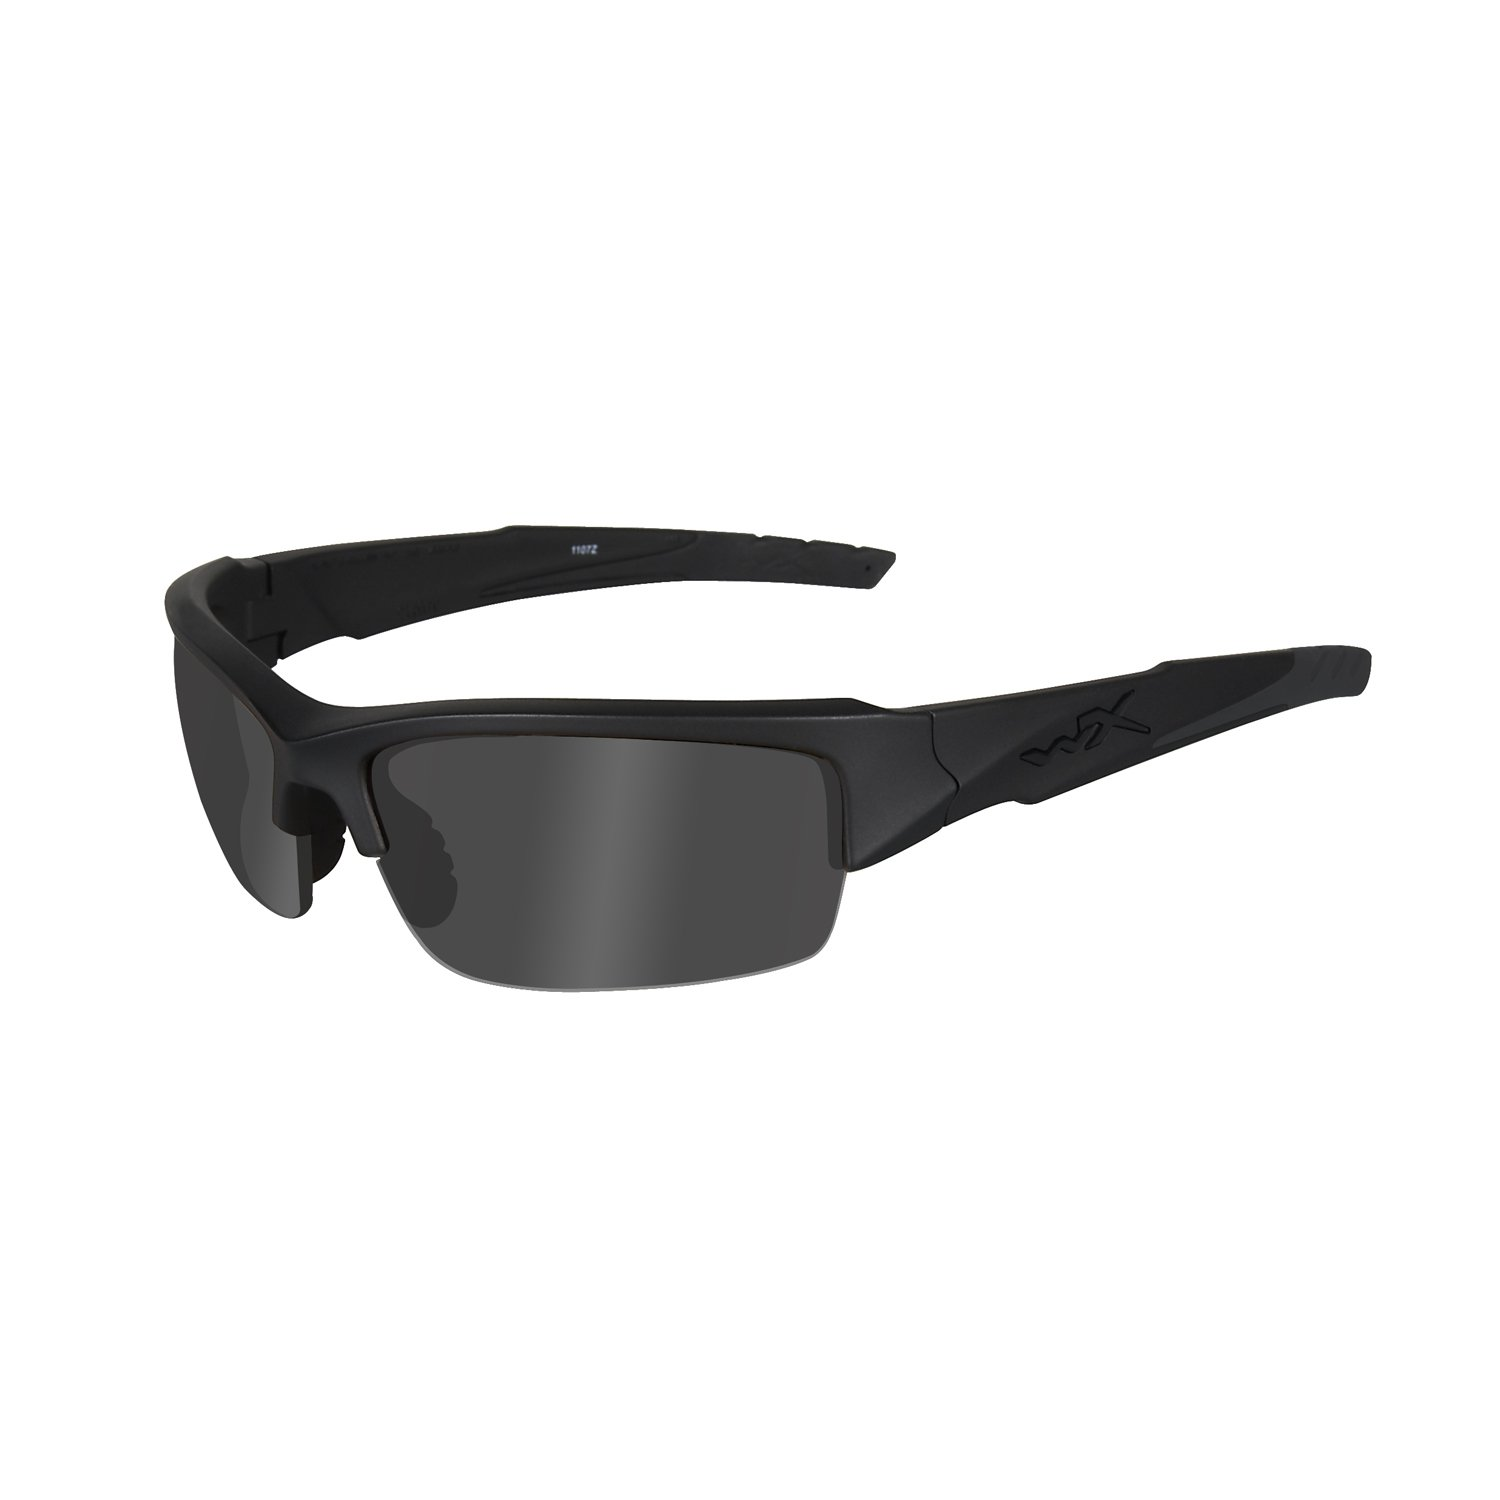 7670d256f4 Walleva Replacement Lenses for Wiley X Valor Sunglasses - Multiple ...